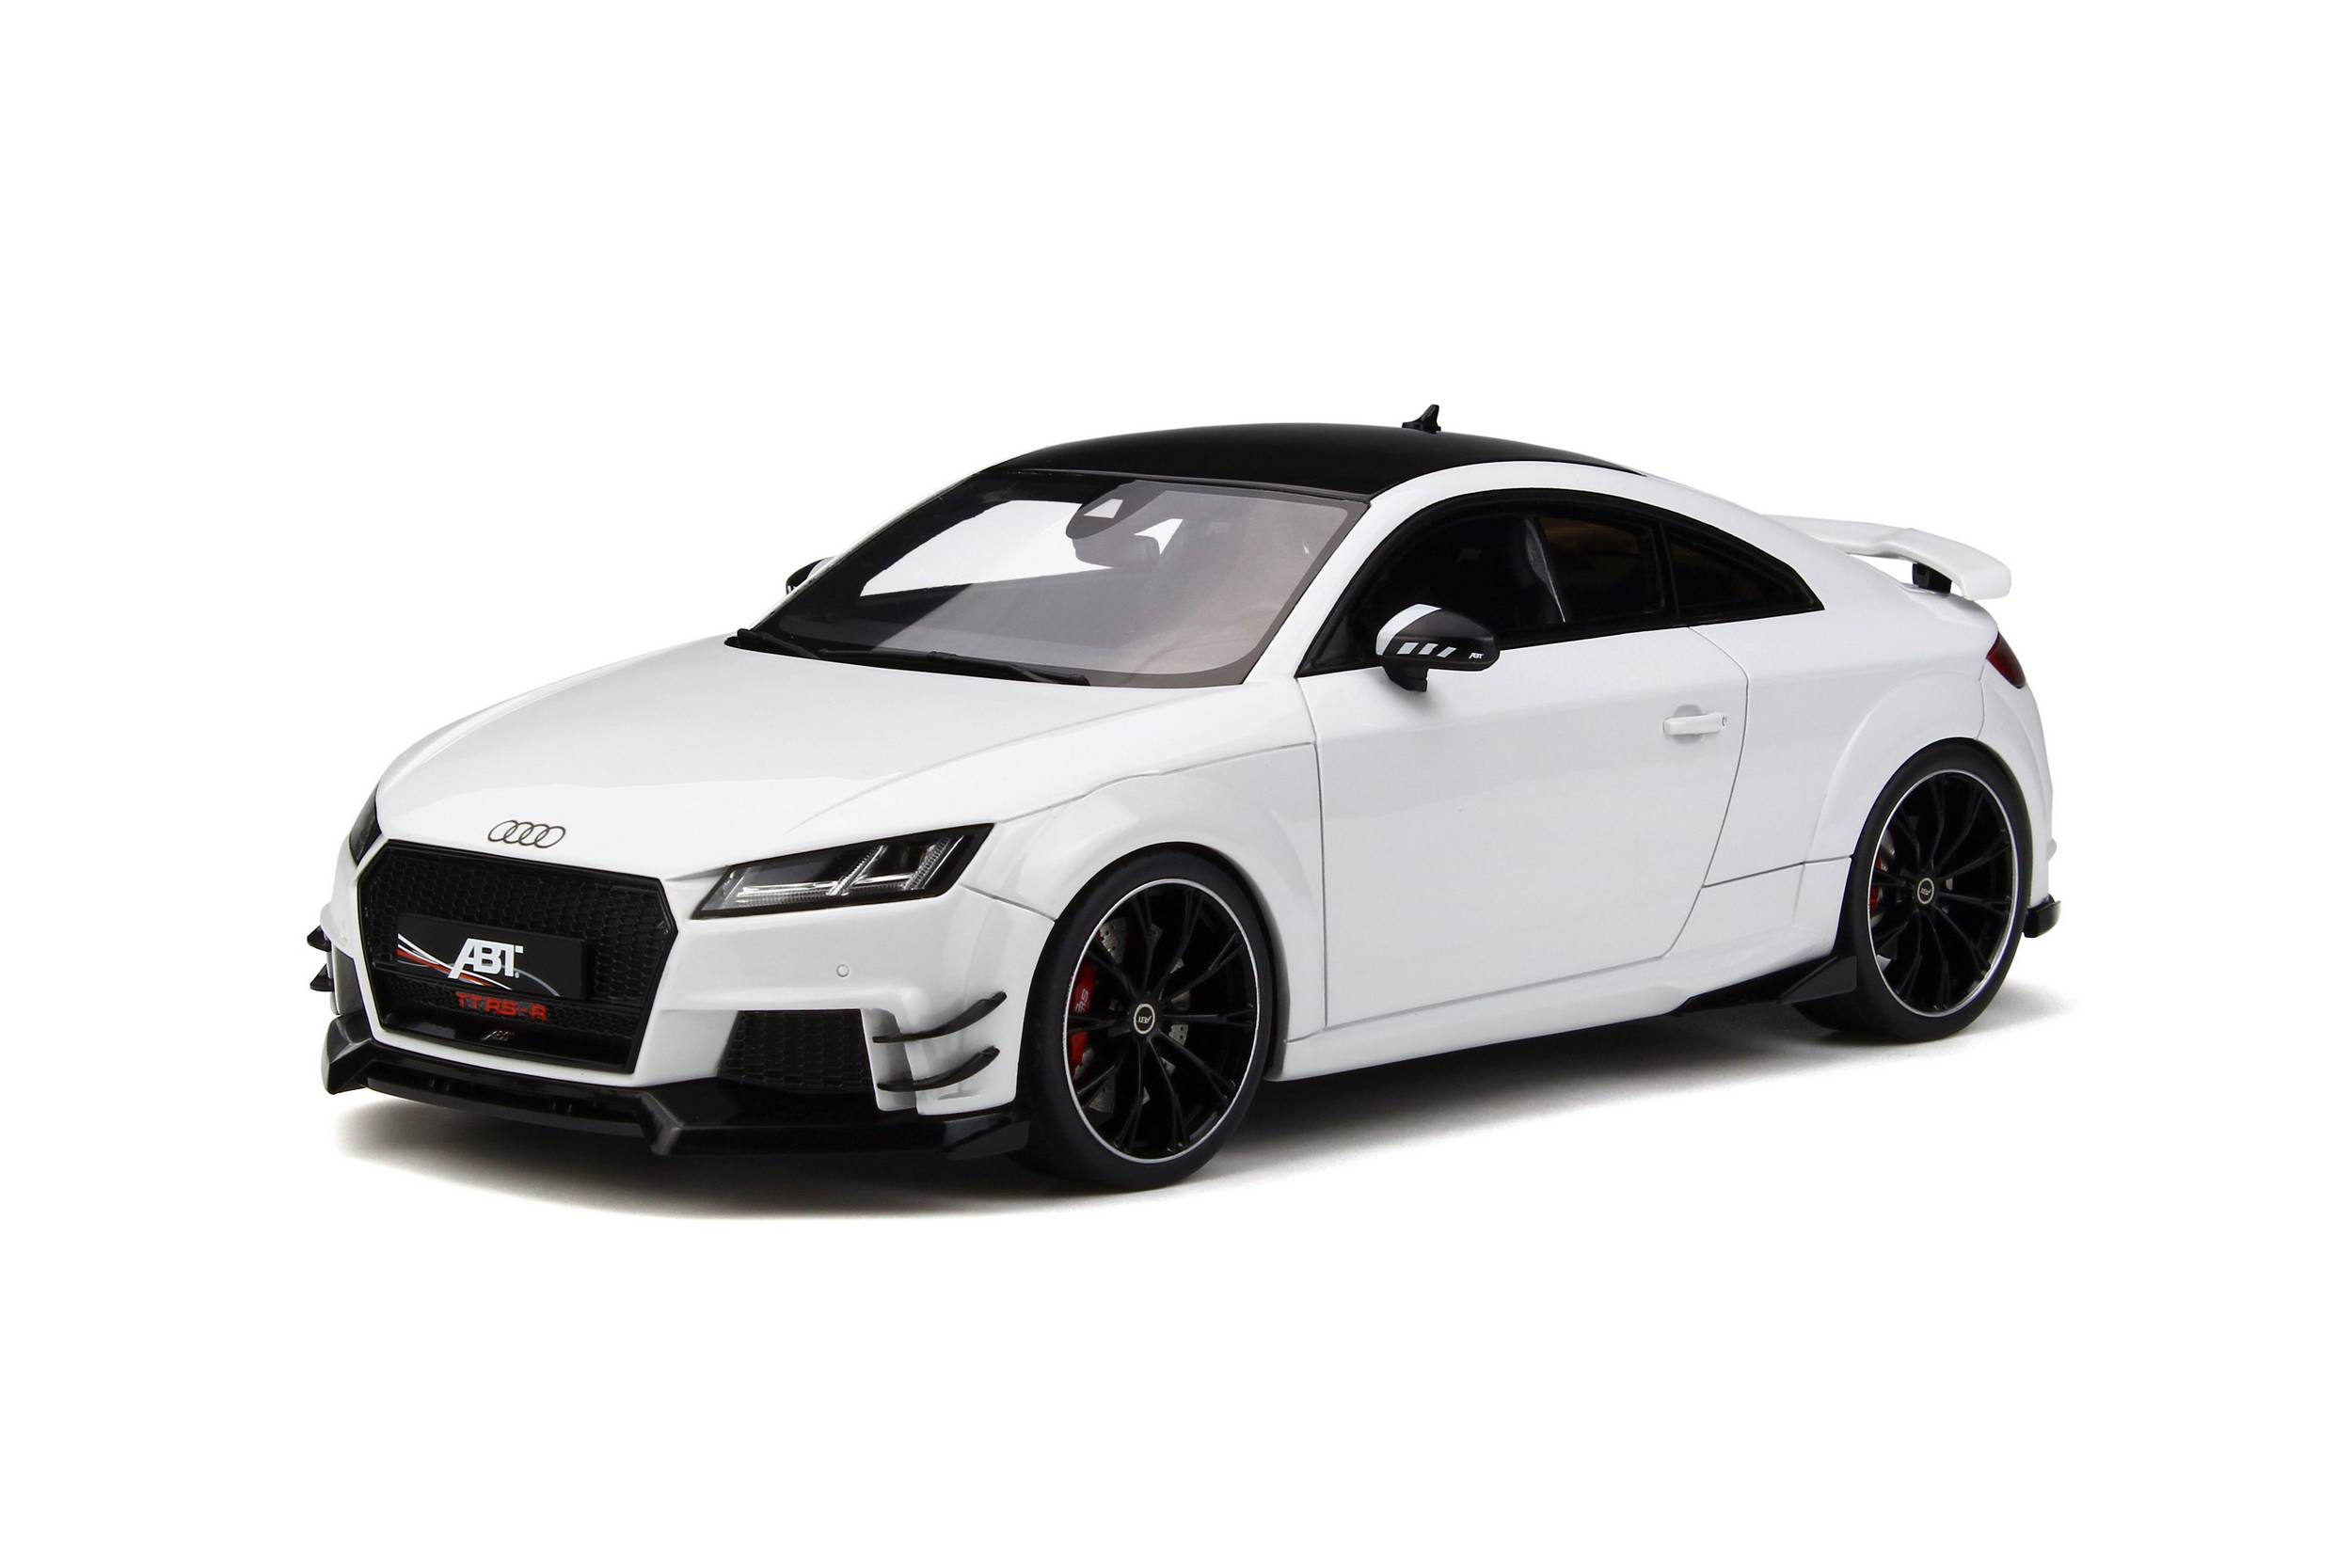 audi abt tt rs r model car collection gt spirit. Black Bedroom Furniture Sets. Home Design Ideas